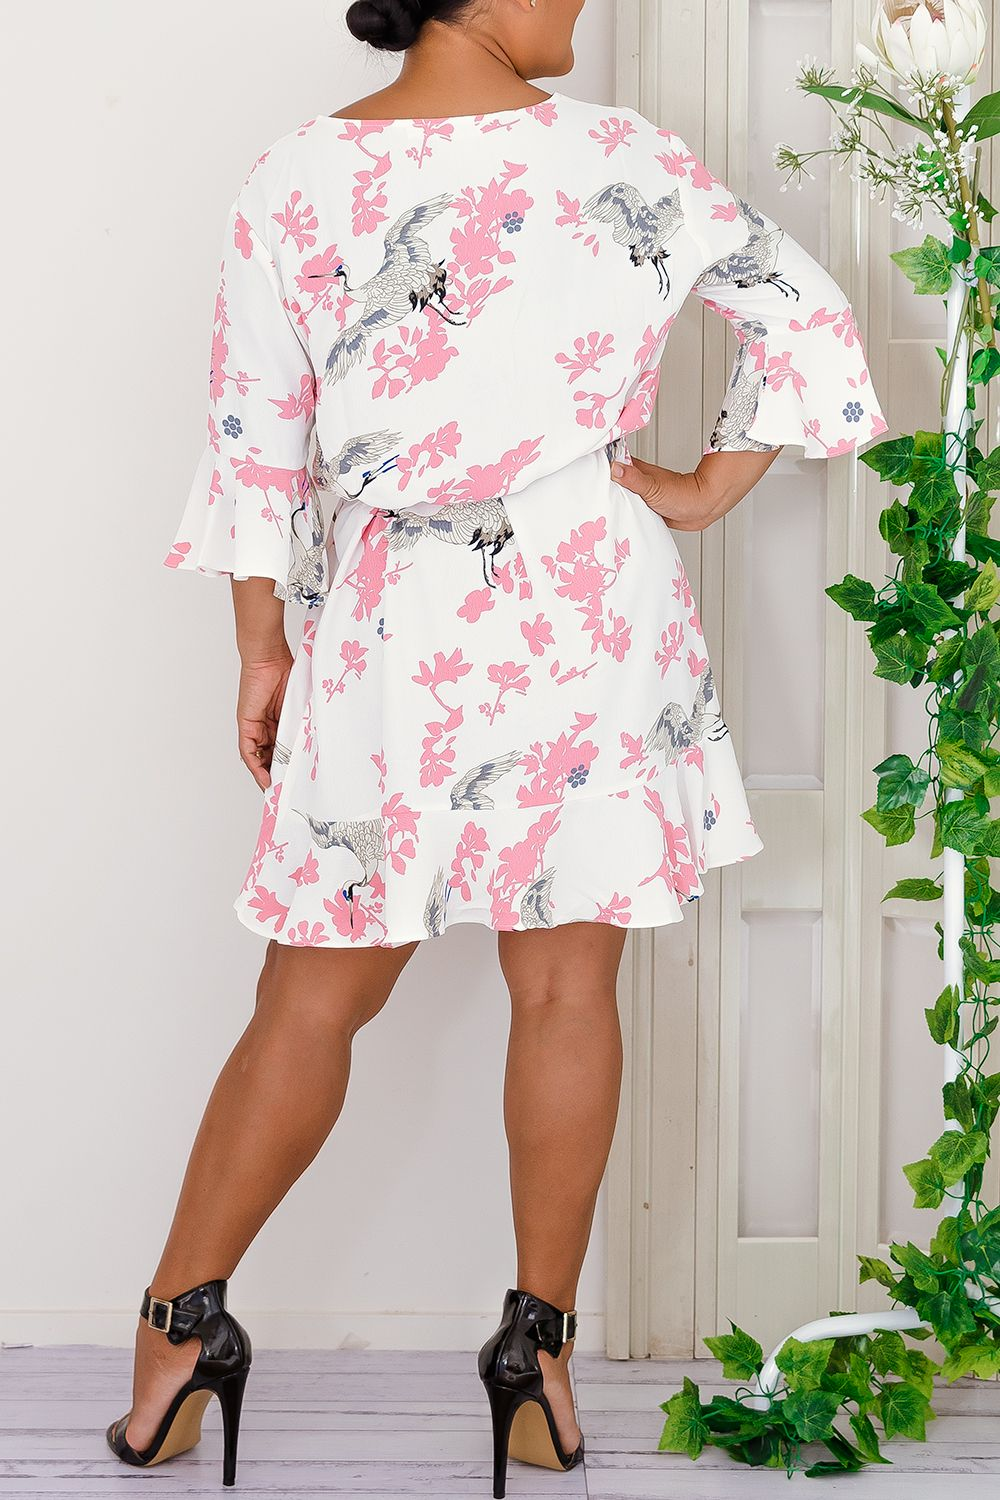 bird floral print midi sleeves 3/4 white pink ruffle dress